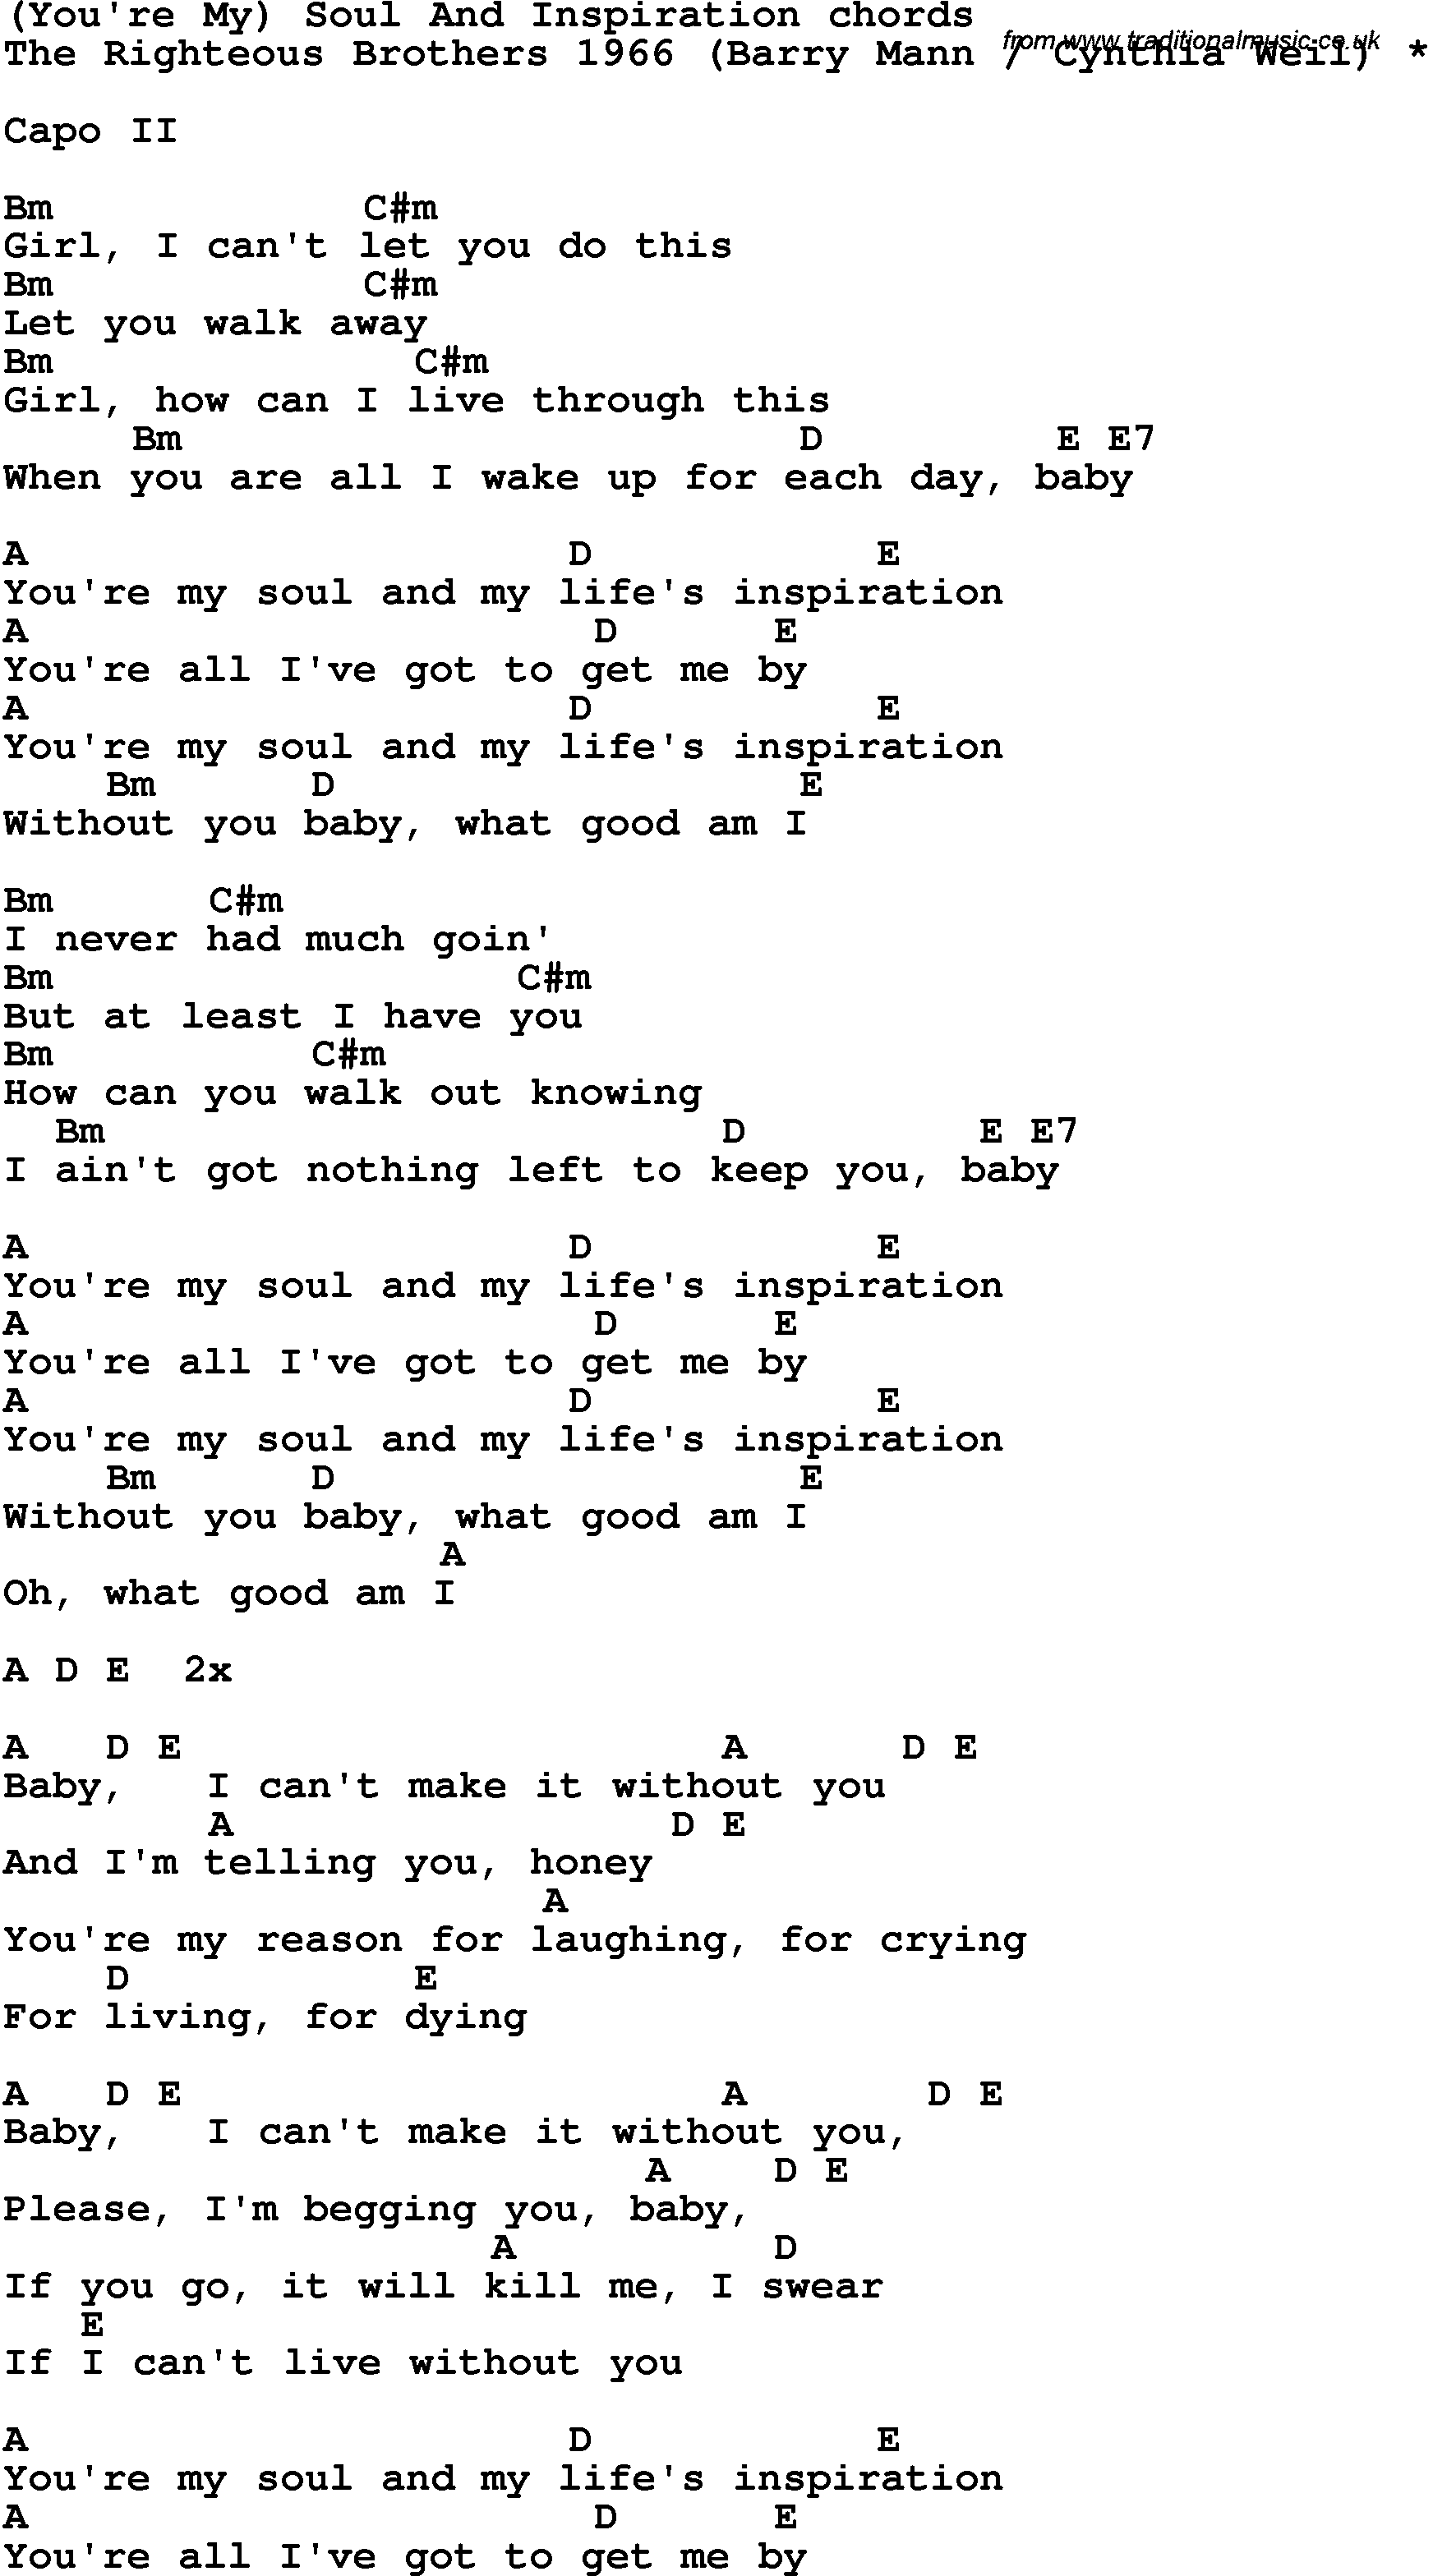 Song Lyrics With Guitar Chords For Youre My Soul And Inspiration